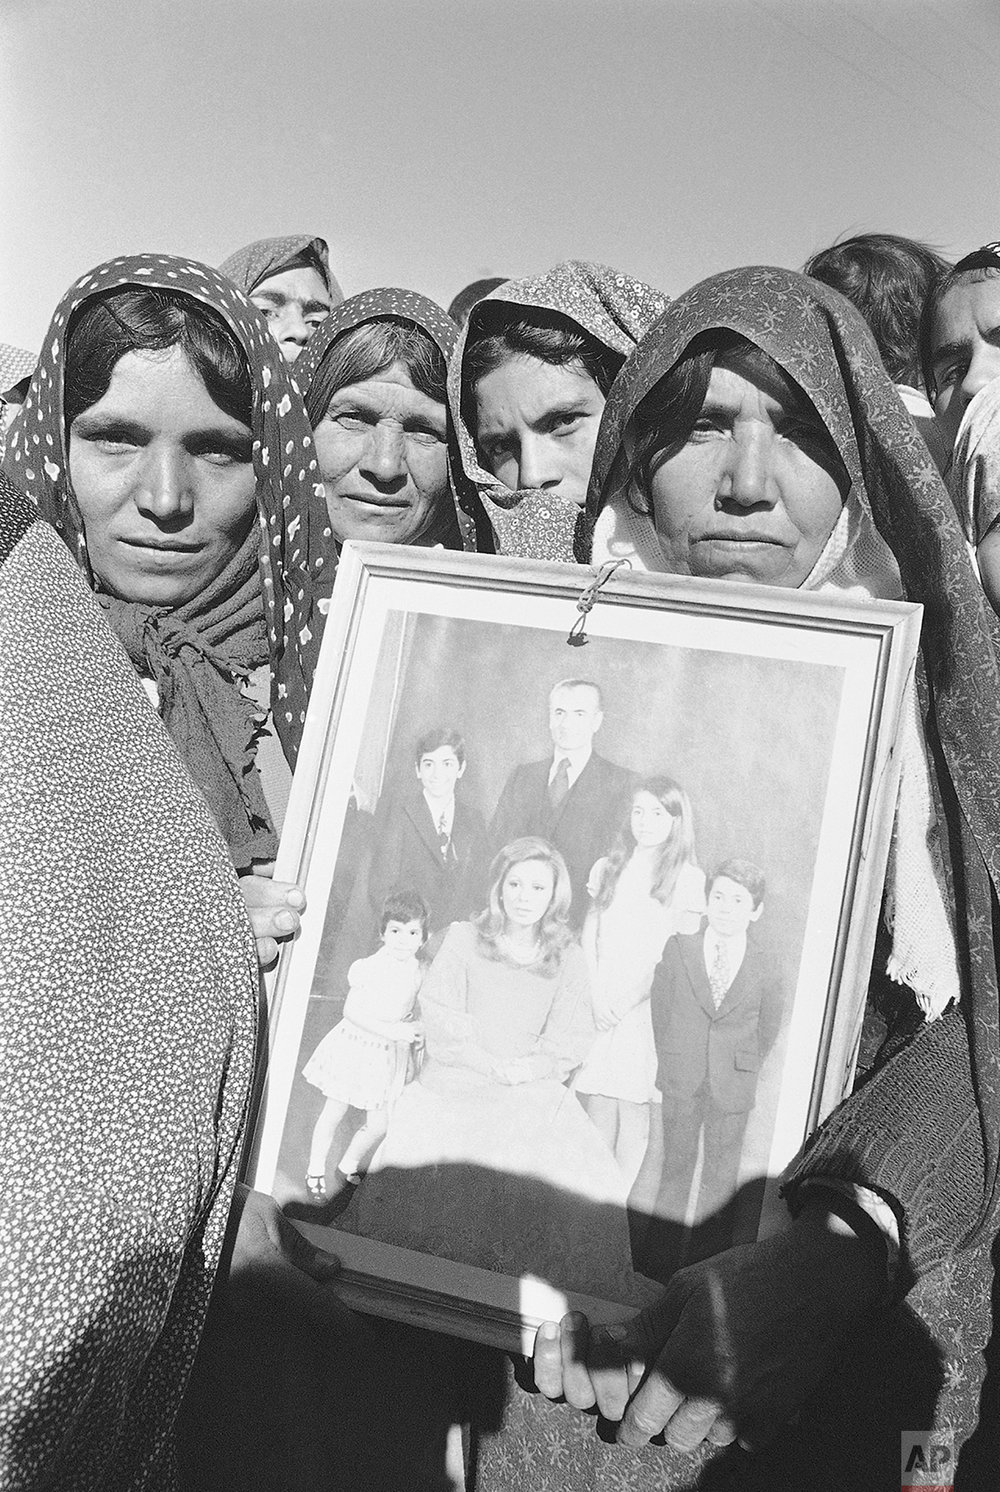 A group of women in Tiran, central Iran, show their support for the Shah by carrying a portrait of the royal family during a loyalist demonstration Nov. 30, 1978. The monarch enjoys some of his strongest support in the country's rural areas. (AP Photo)